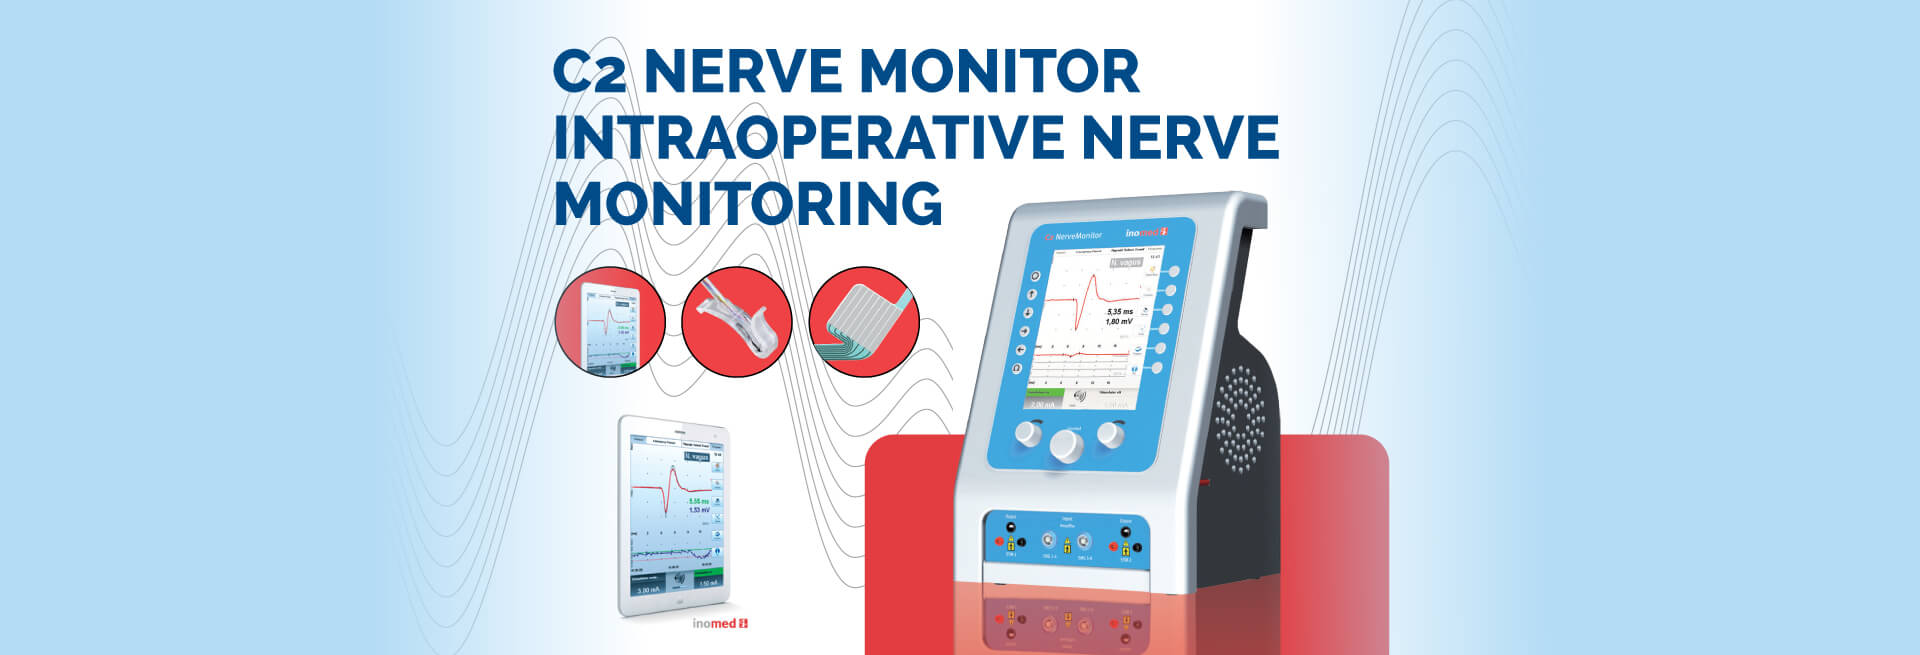 C2 Nerve Monitor Intraoperative Nerve Monitoring